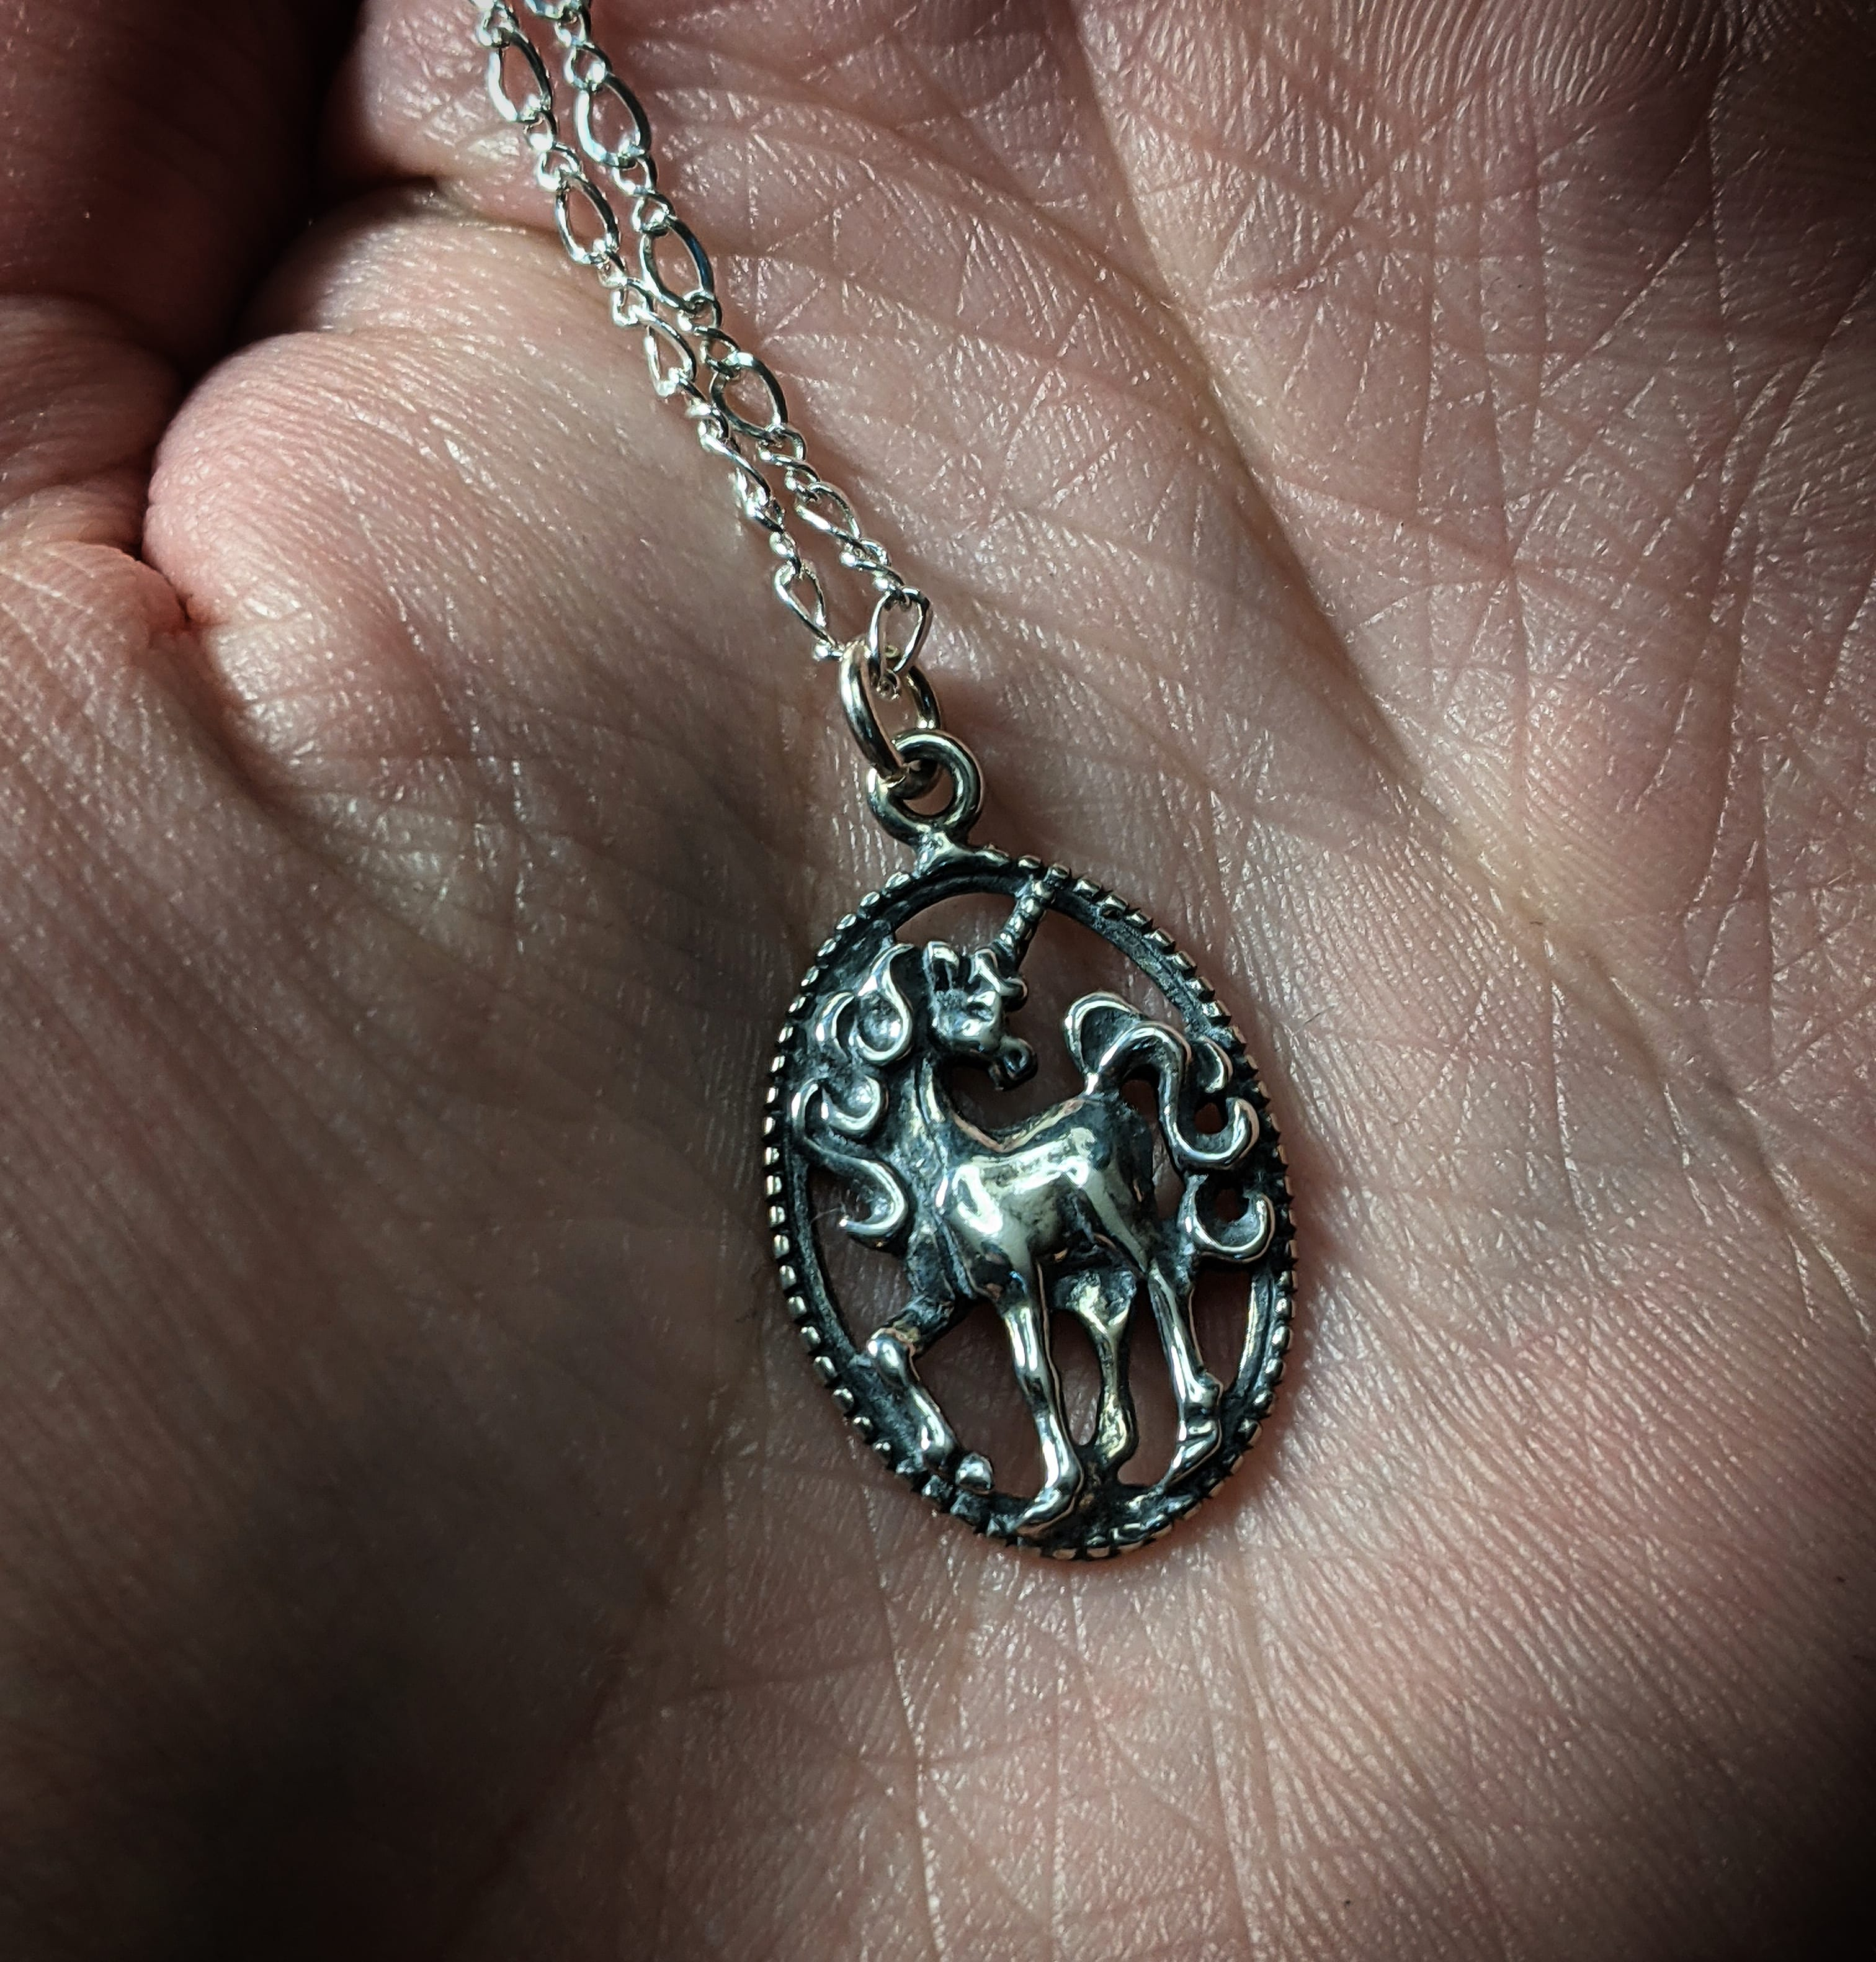 Vintage Unicorn Silver Necklace With (1) 18 INCH Sterling Silver Chain